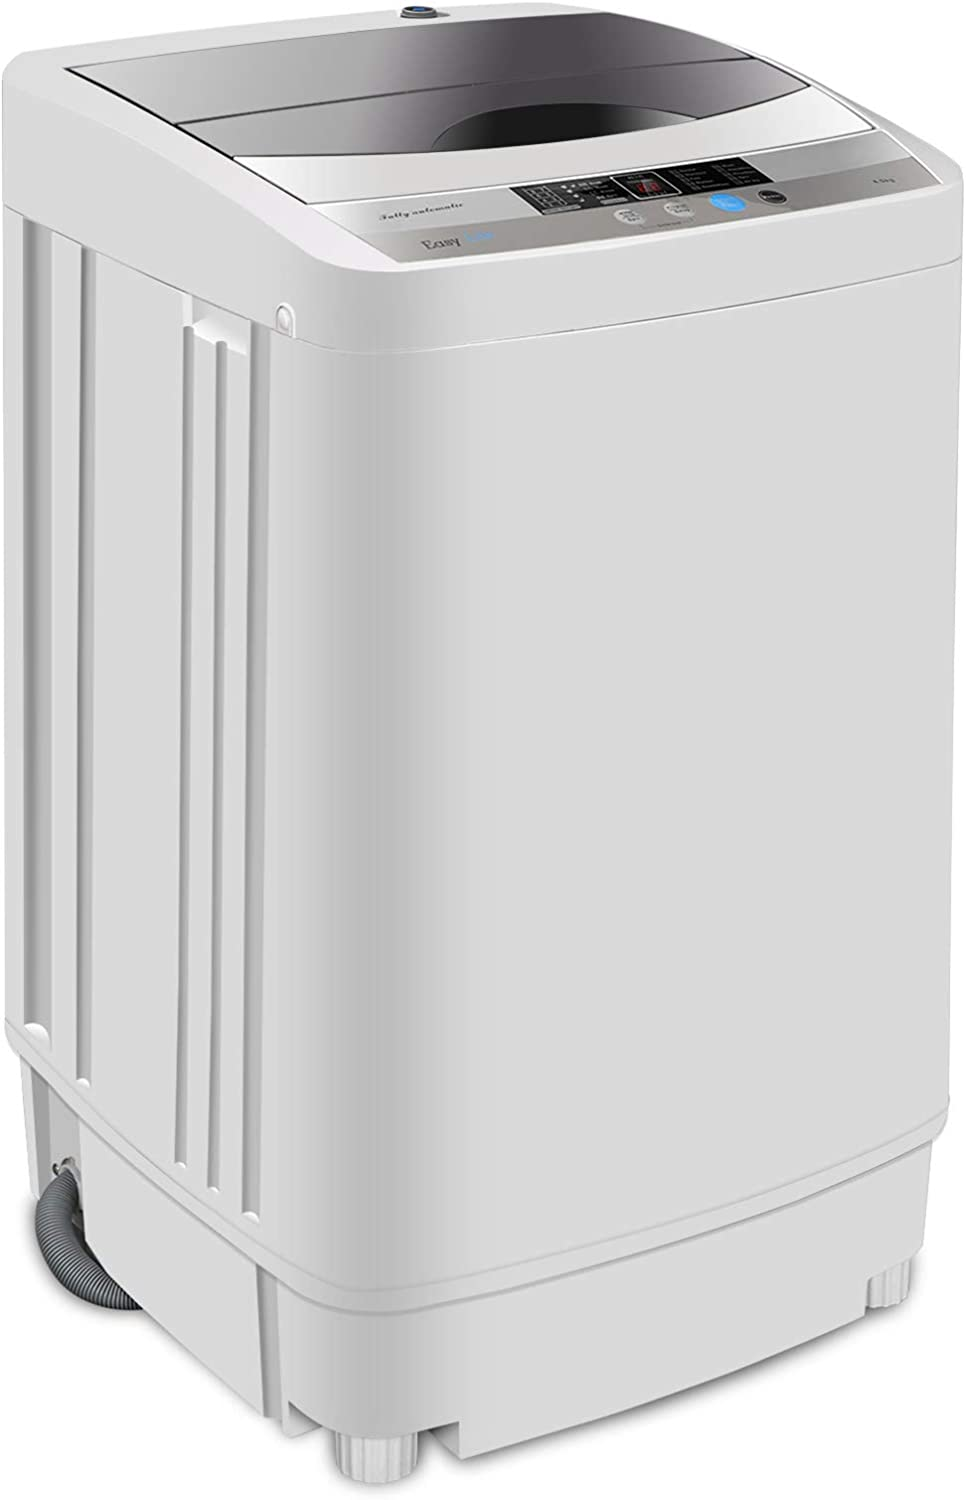 SUPER DEAL Newest Portable Full-Automatic Washing Machine 1.6 Cu. ft. Laundry Washer 2in1 Washer&Spinner w/Drain Pump and Extra Long Hose